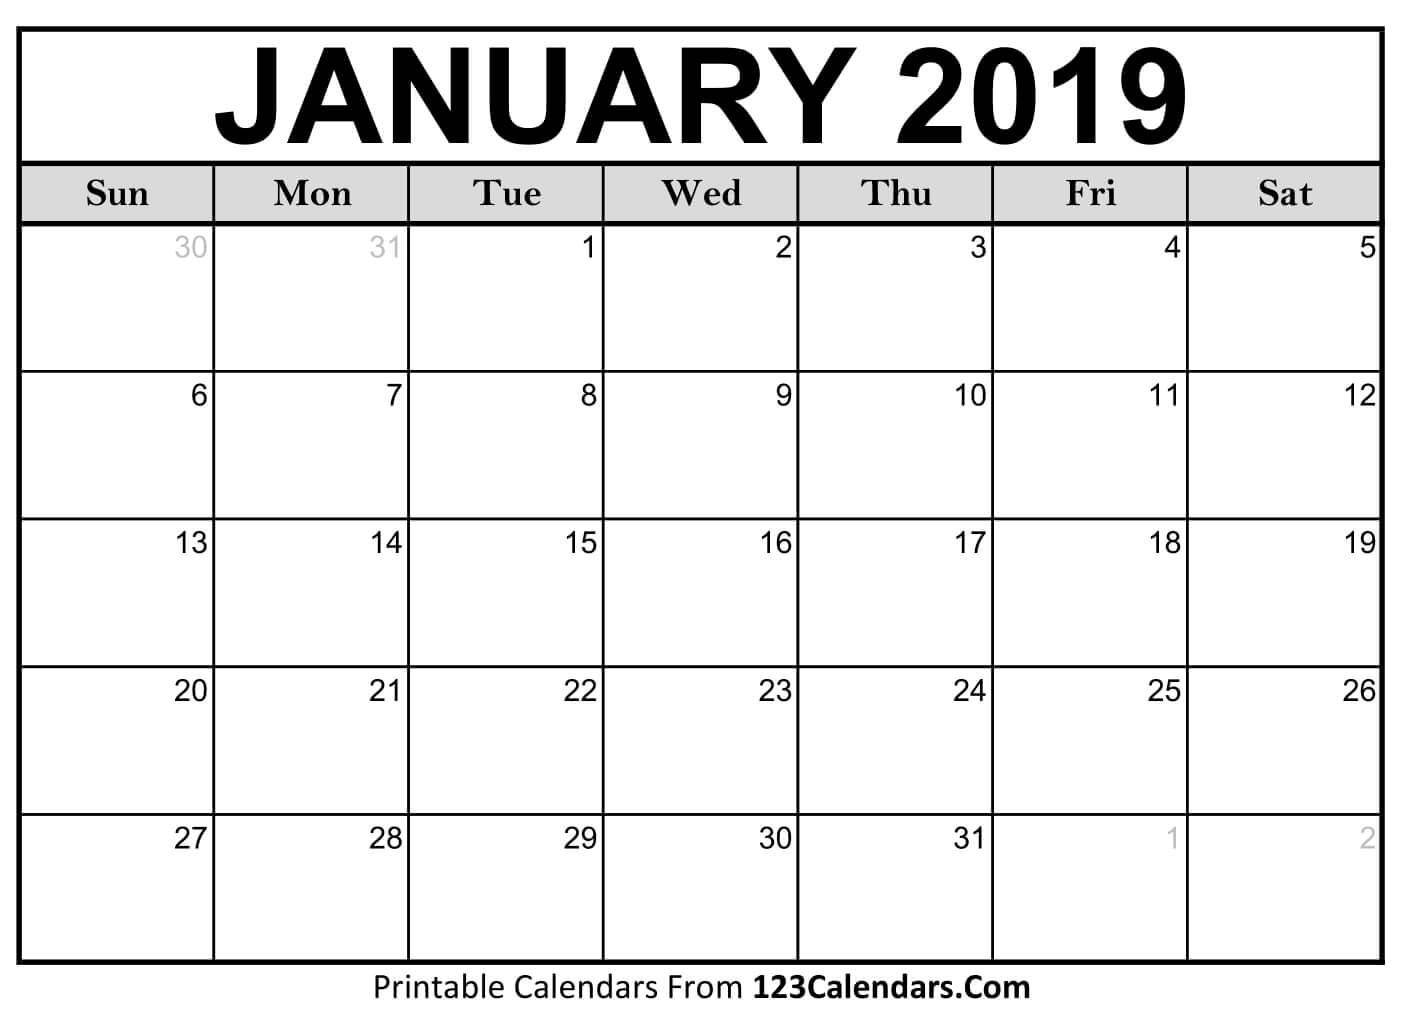 Calendar Of January 2019 January 2019 Activity Calendar – Babcock Community Care Centre